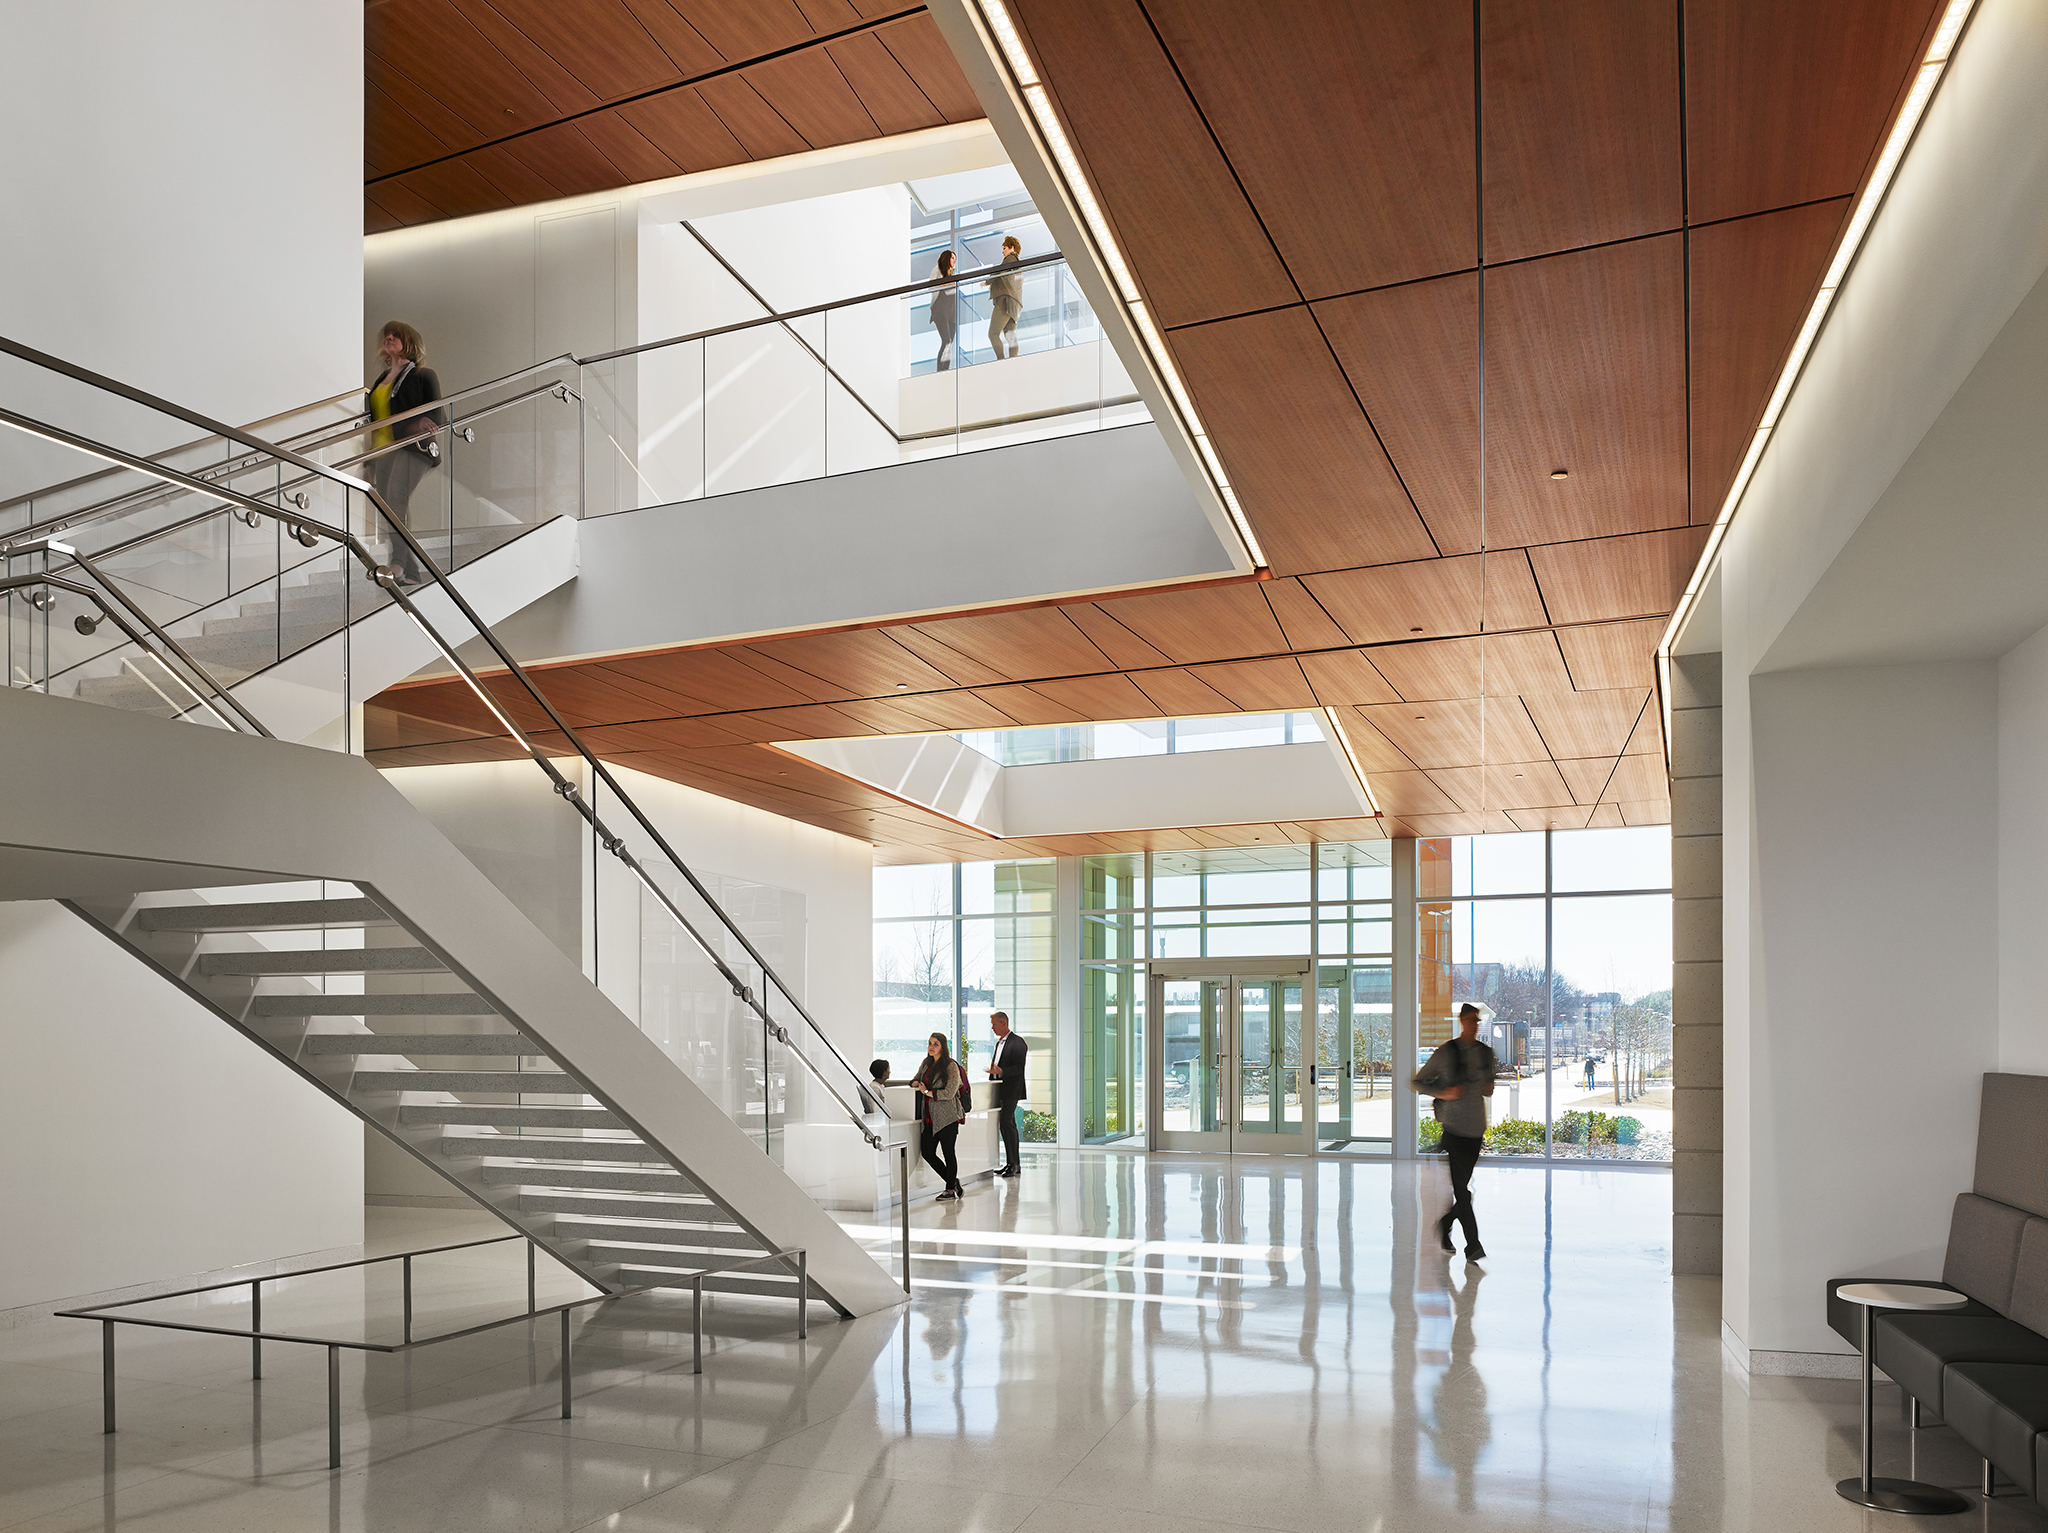 BioEngineering Sciences Building  University of Texas  ZGF Architects  Dallas, Texas      Return to Projects